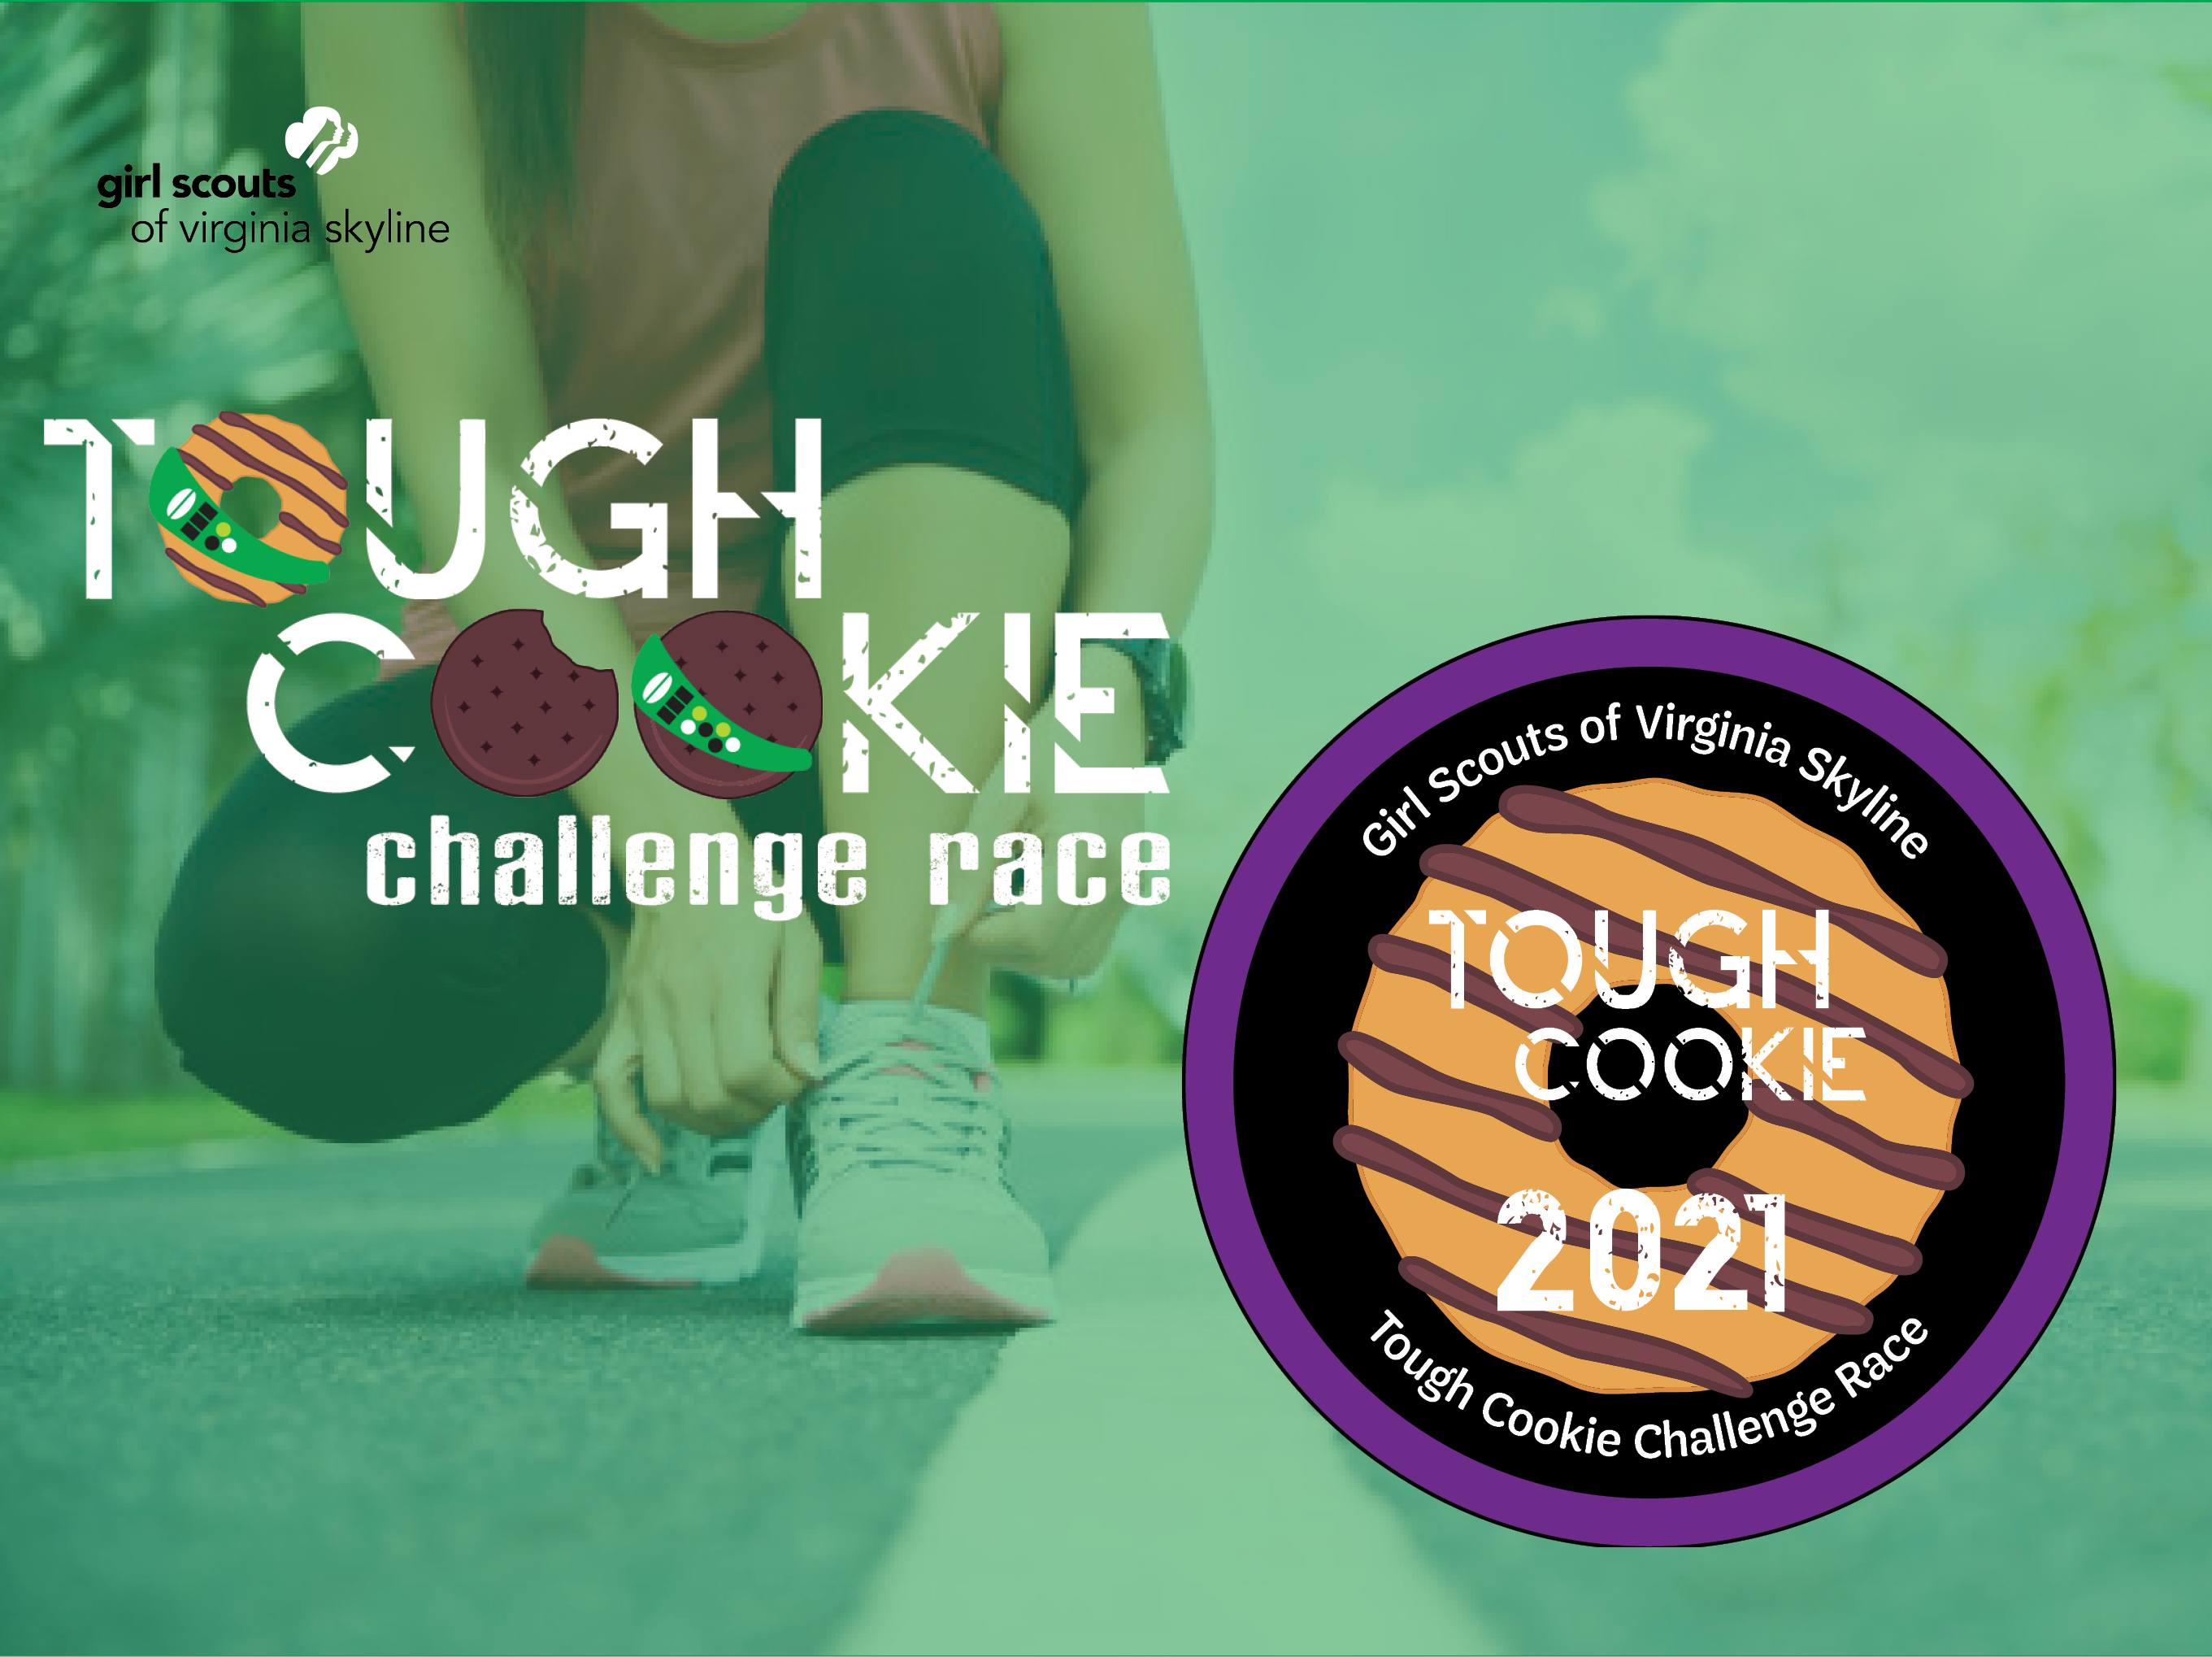 Tough cookie challenge race 2021 mobilecause background with patch previous logo